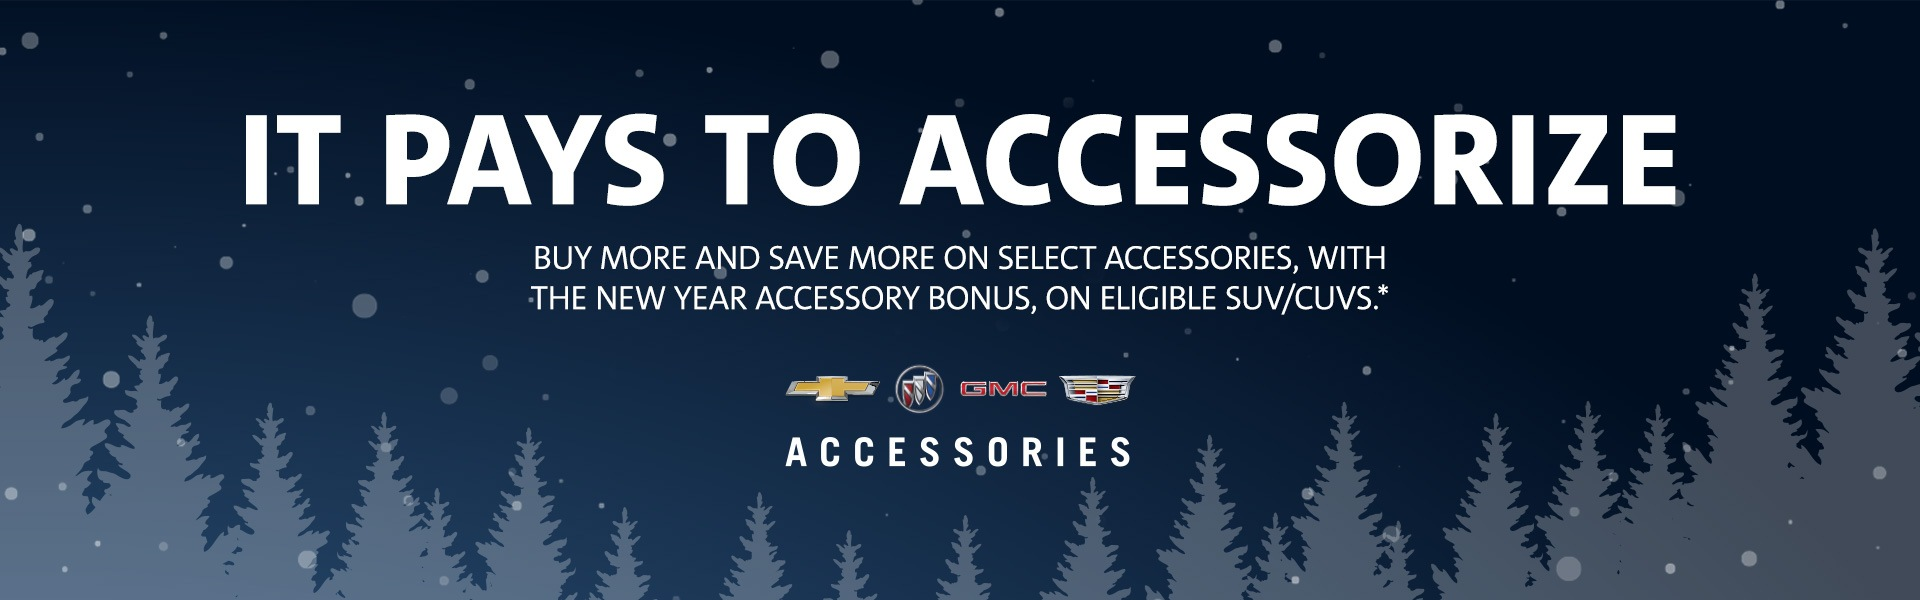 New Year Accessory bonus - English